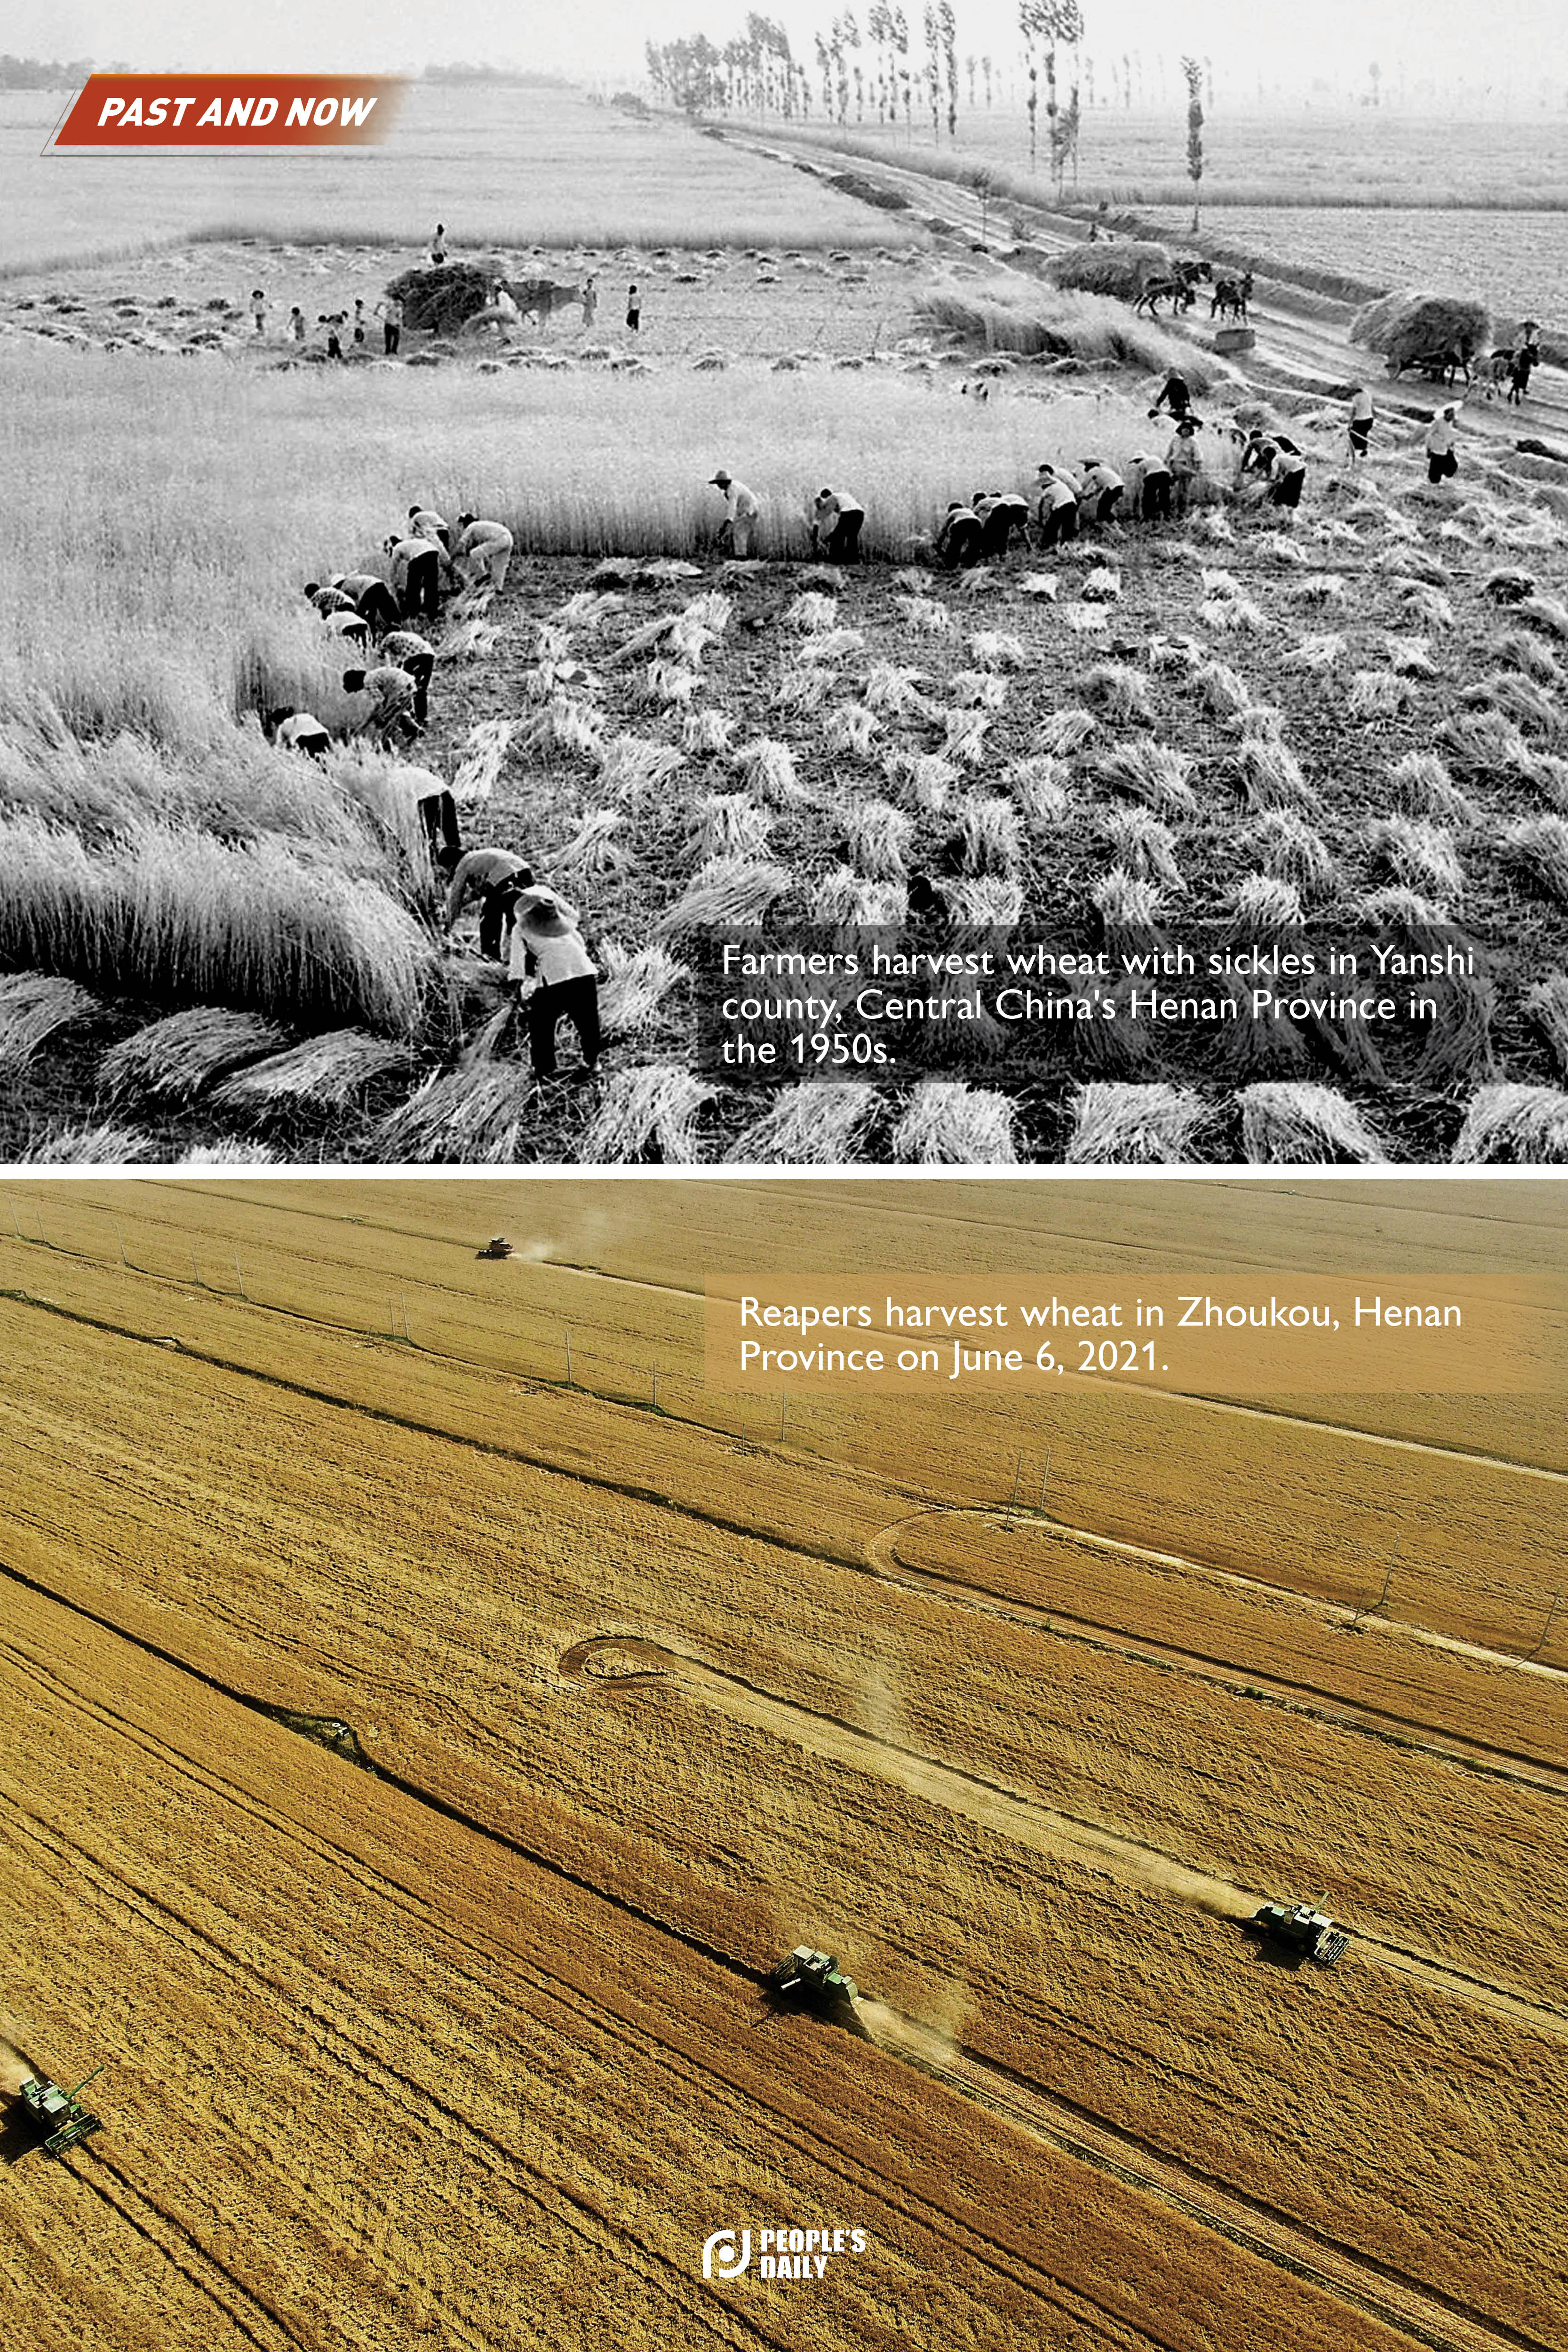 Agricultural modernization: Past and now